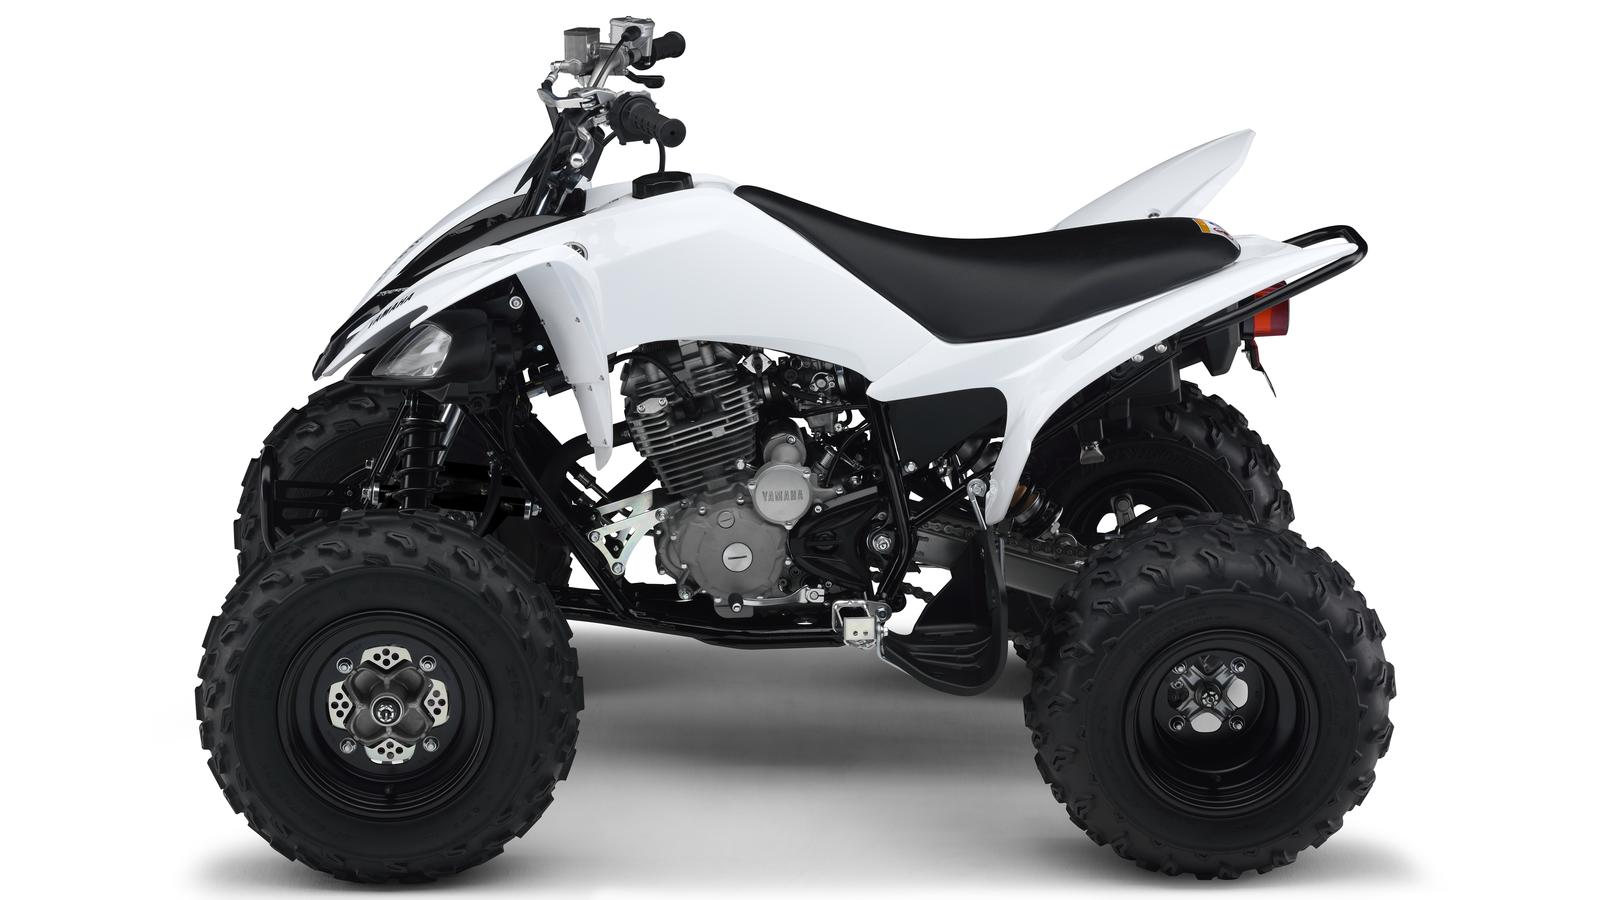 YAMAHA YFM 250 R Raptor  2011 photo 3